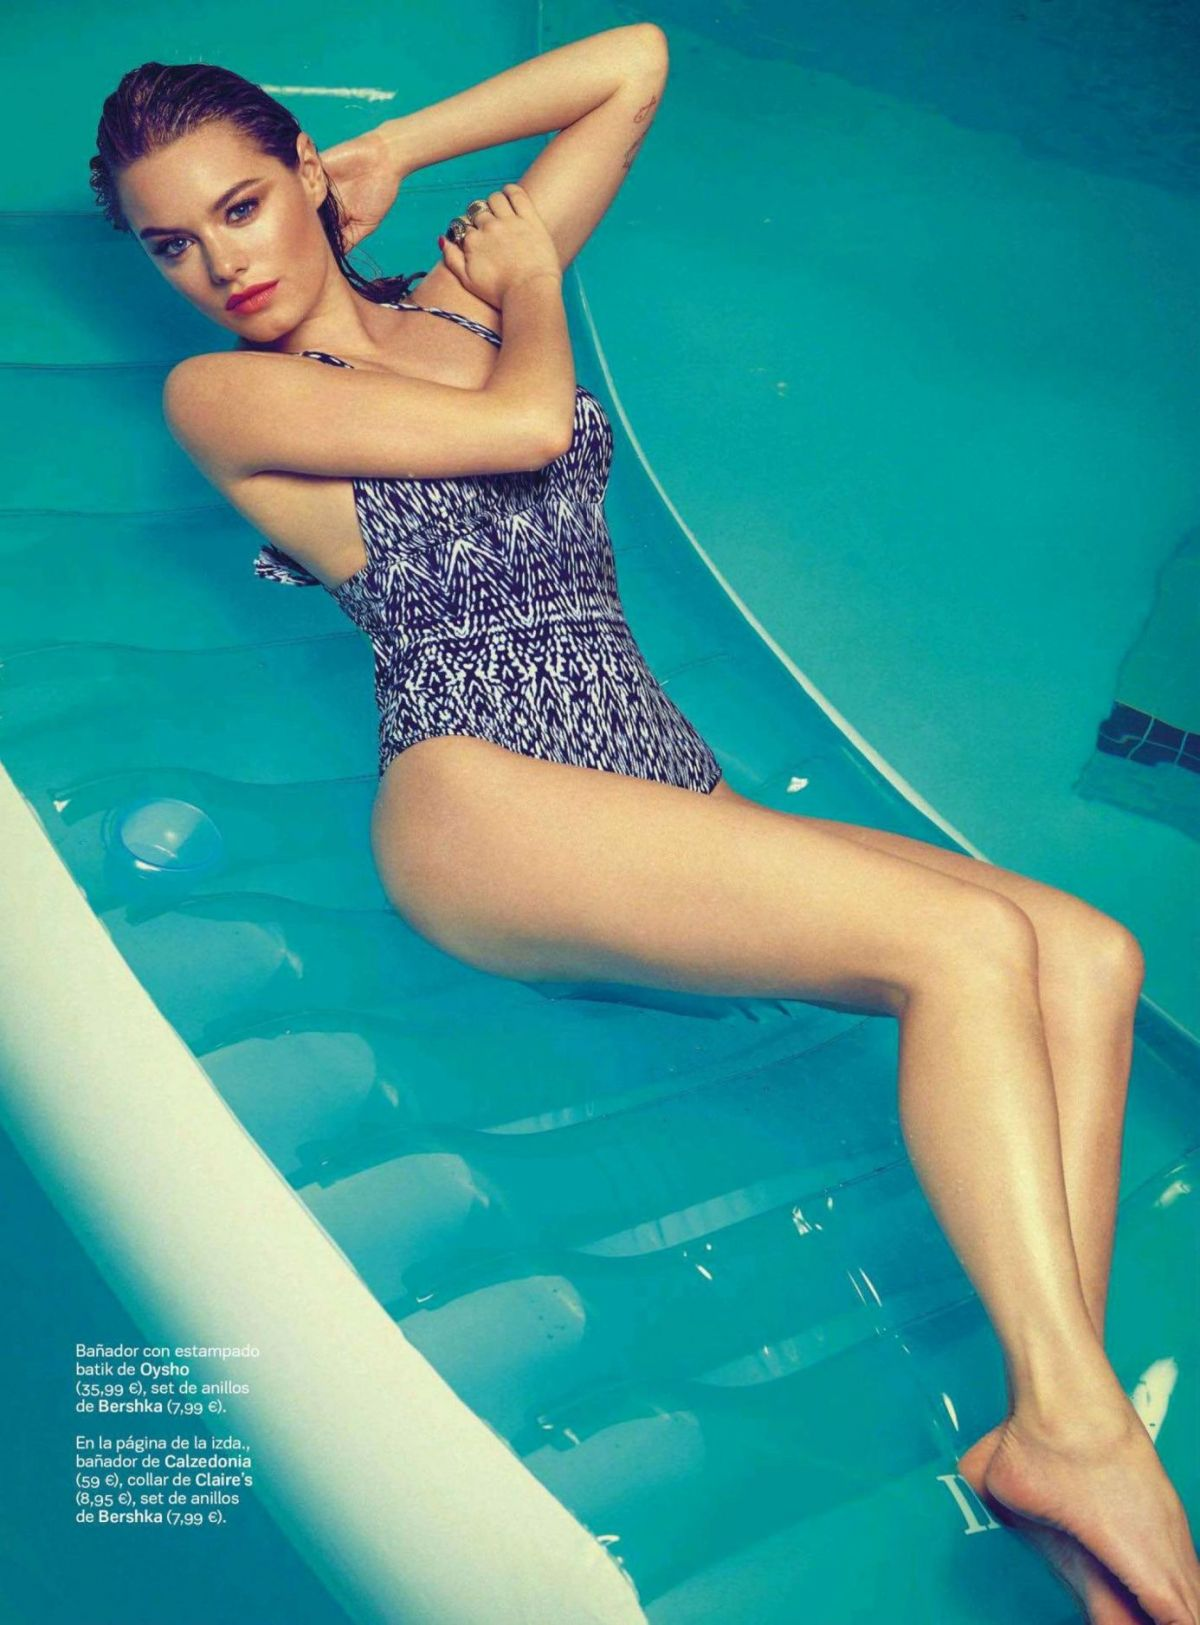 camille-rowe-in-s-moda-magazine-spain-april-2015-issue_10.jpg